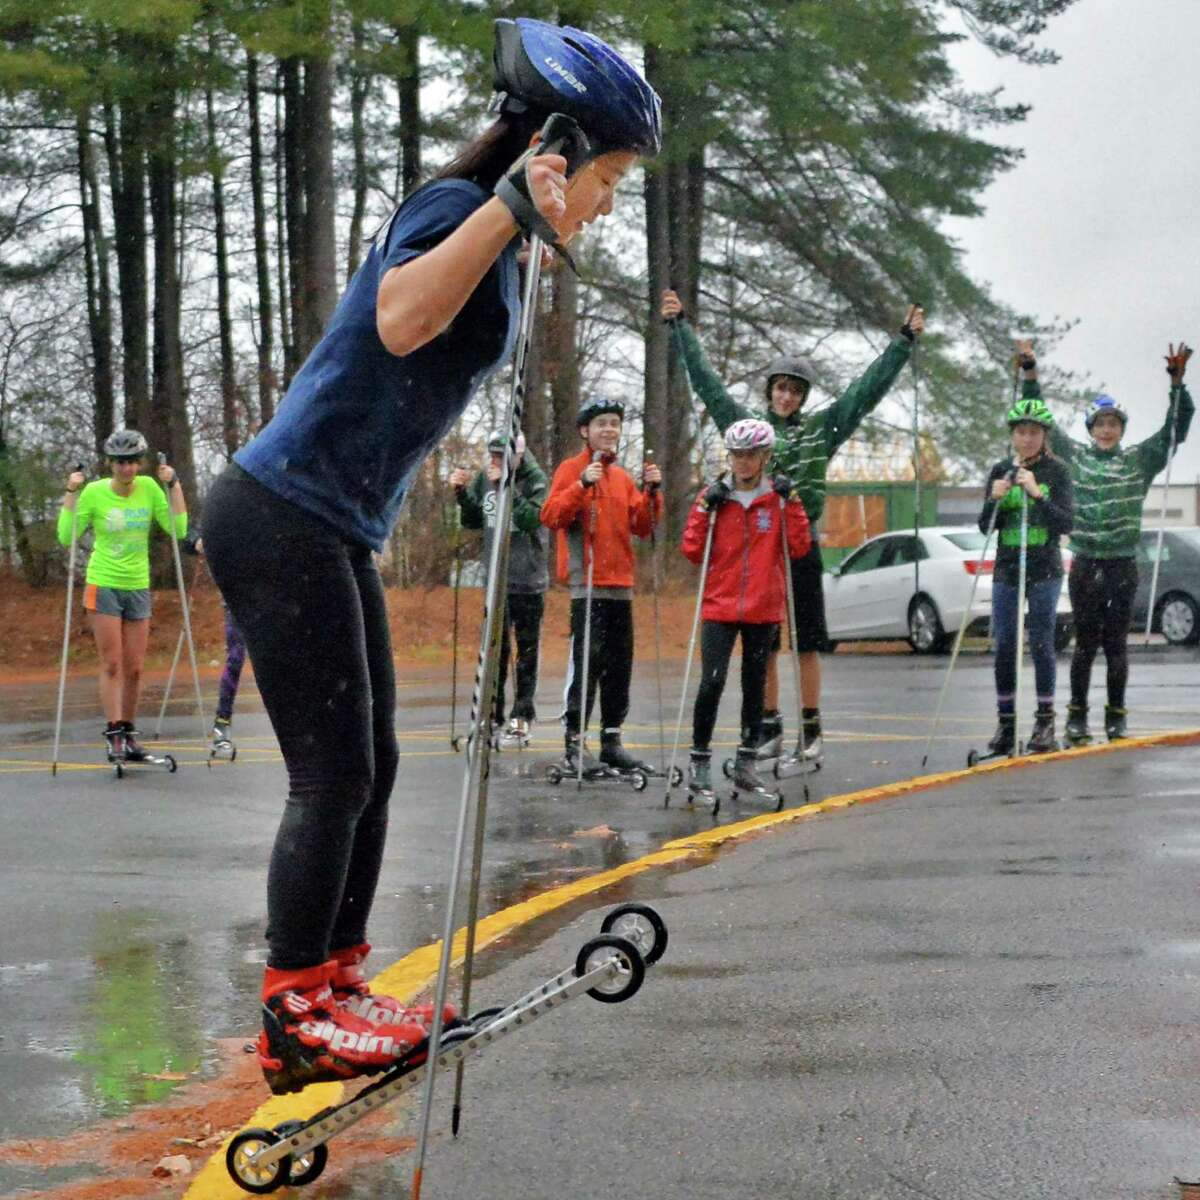 Sohyun Park practices a jump on roller skis as the team practices at the school Thursday Dec. 17, 2015 in Clifton Park, NY. (John Carl D'Annibale / Times Union)